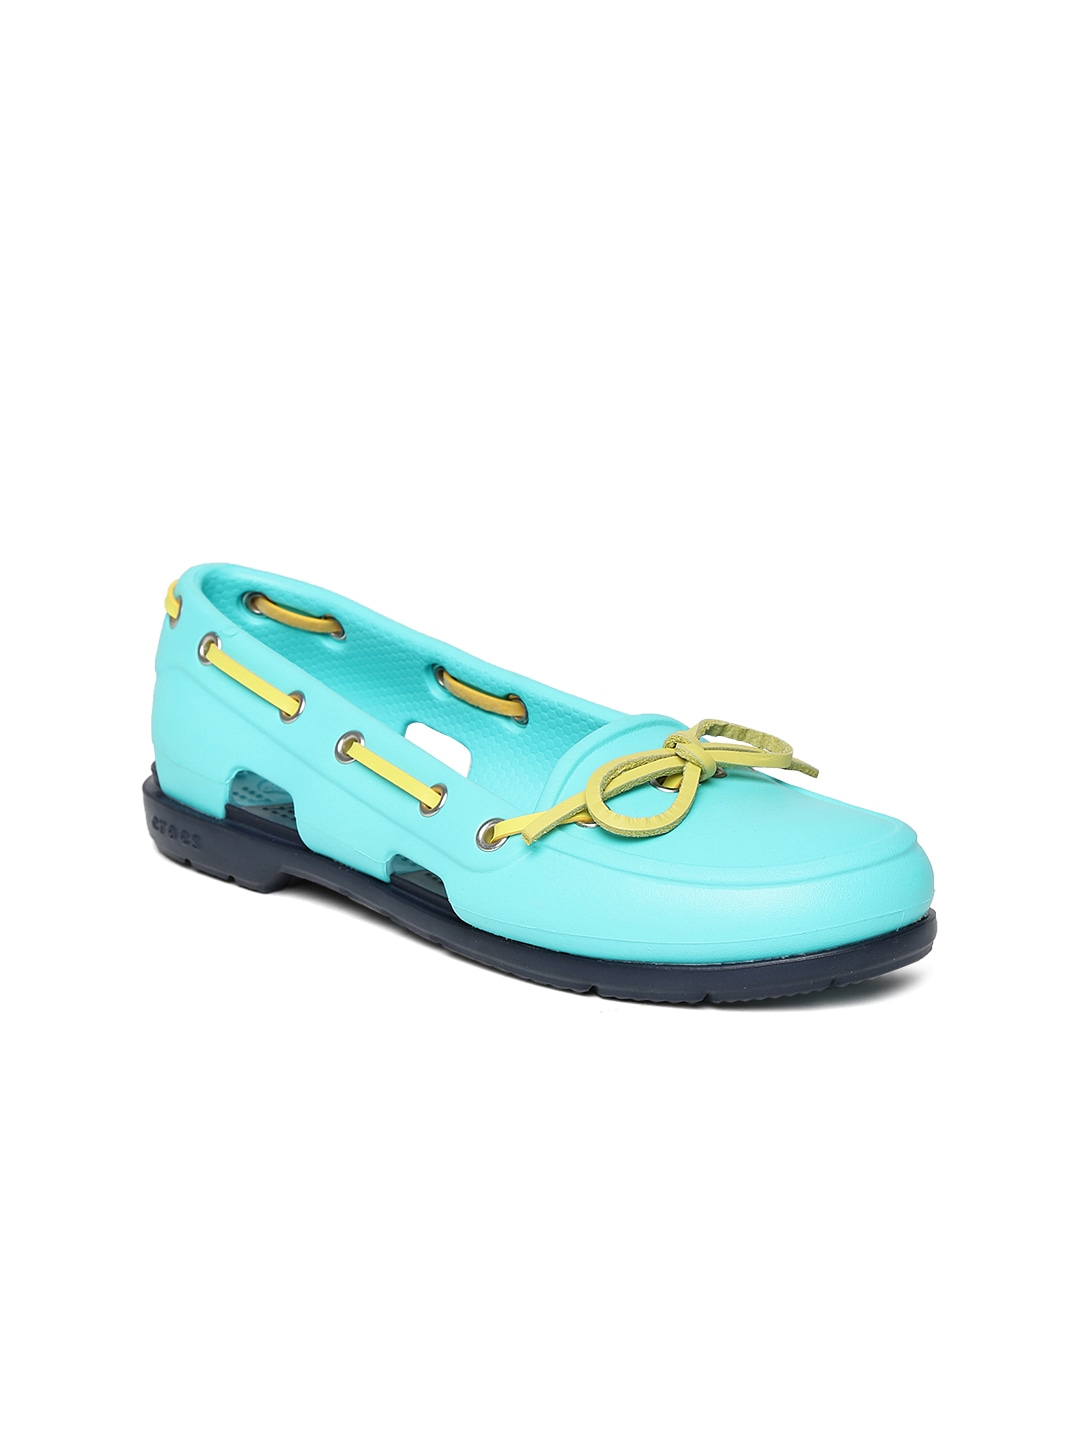 Crocs Women Sea Green Boat Shoes